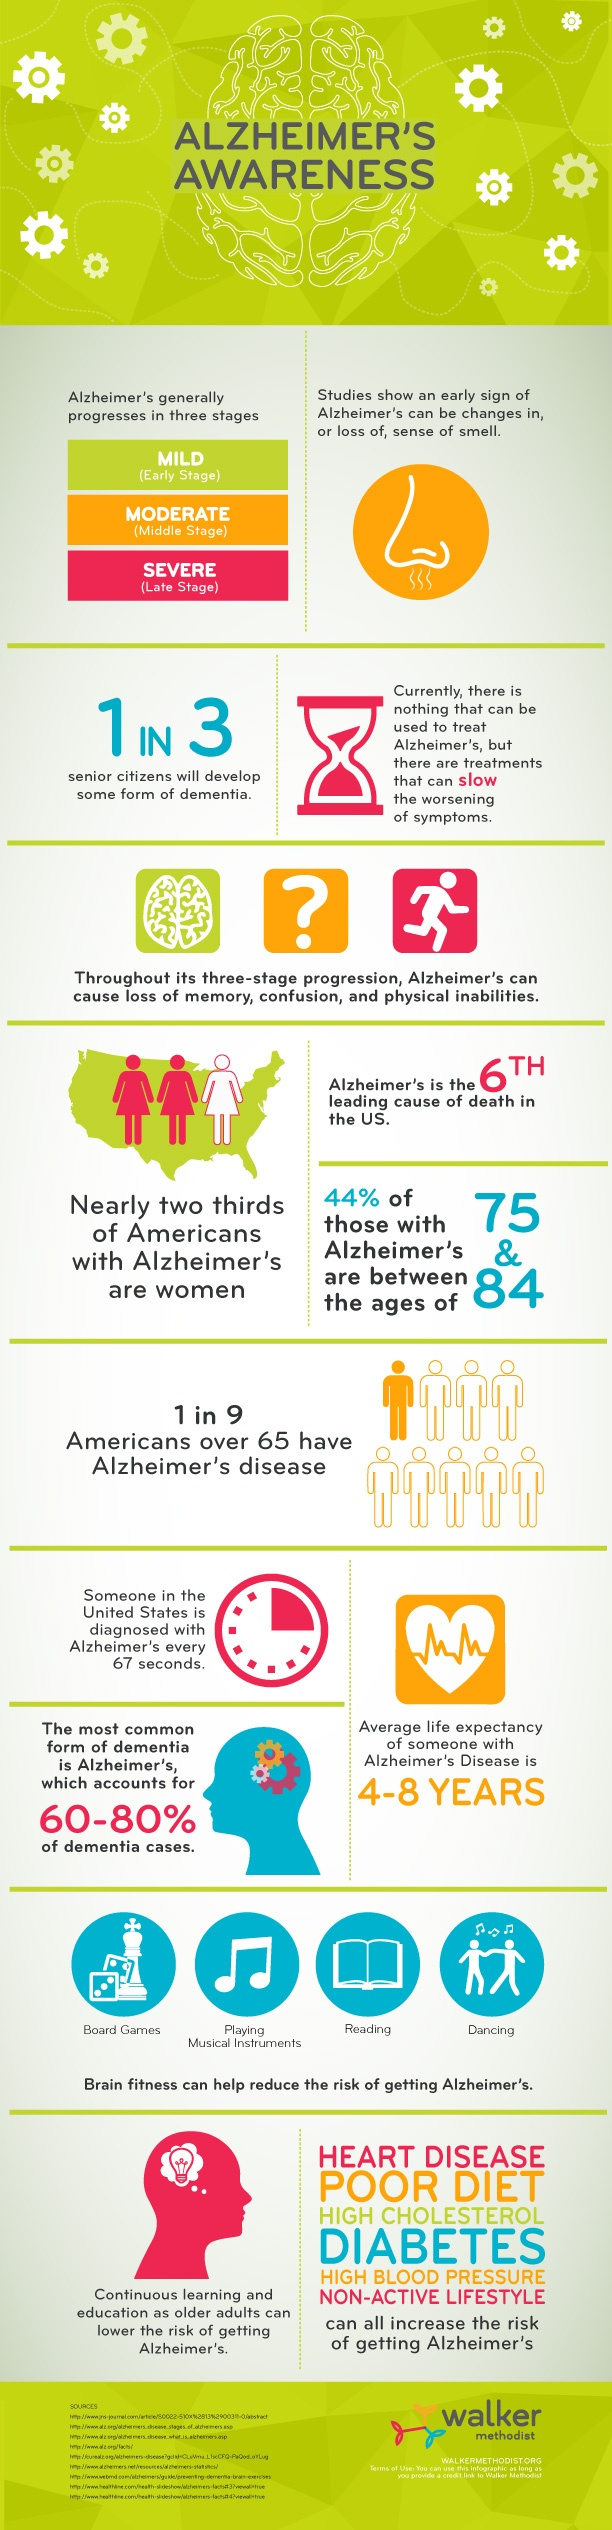 Facts About Alzheimer's